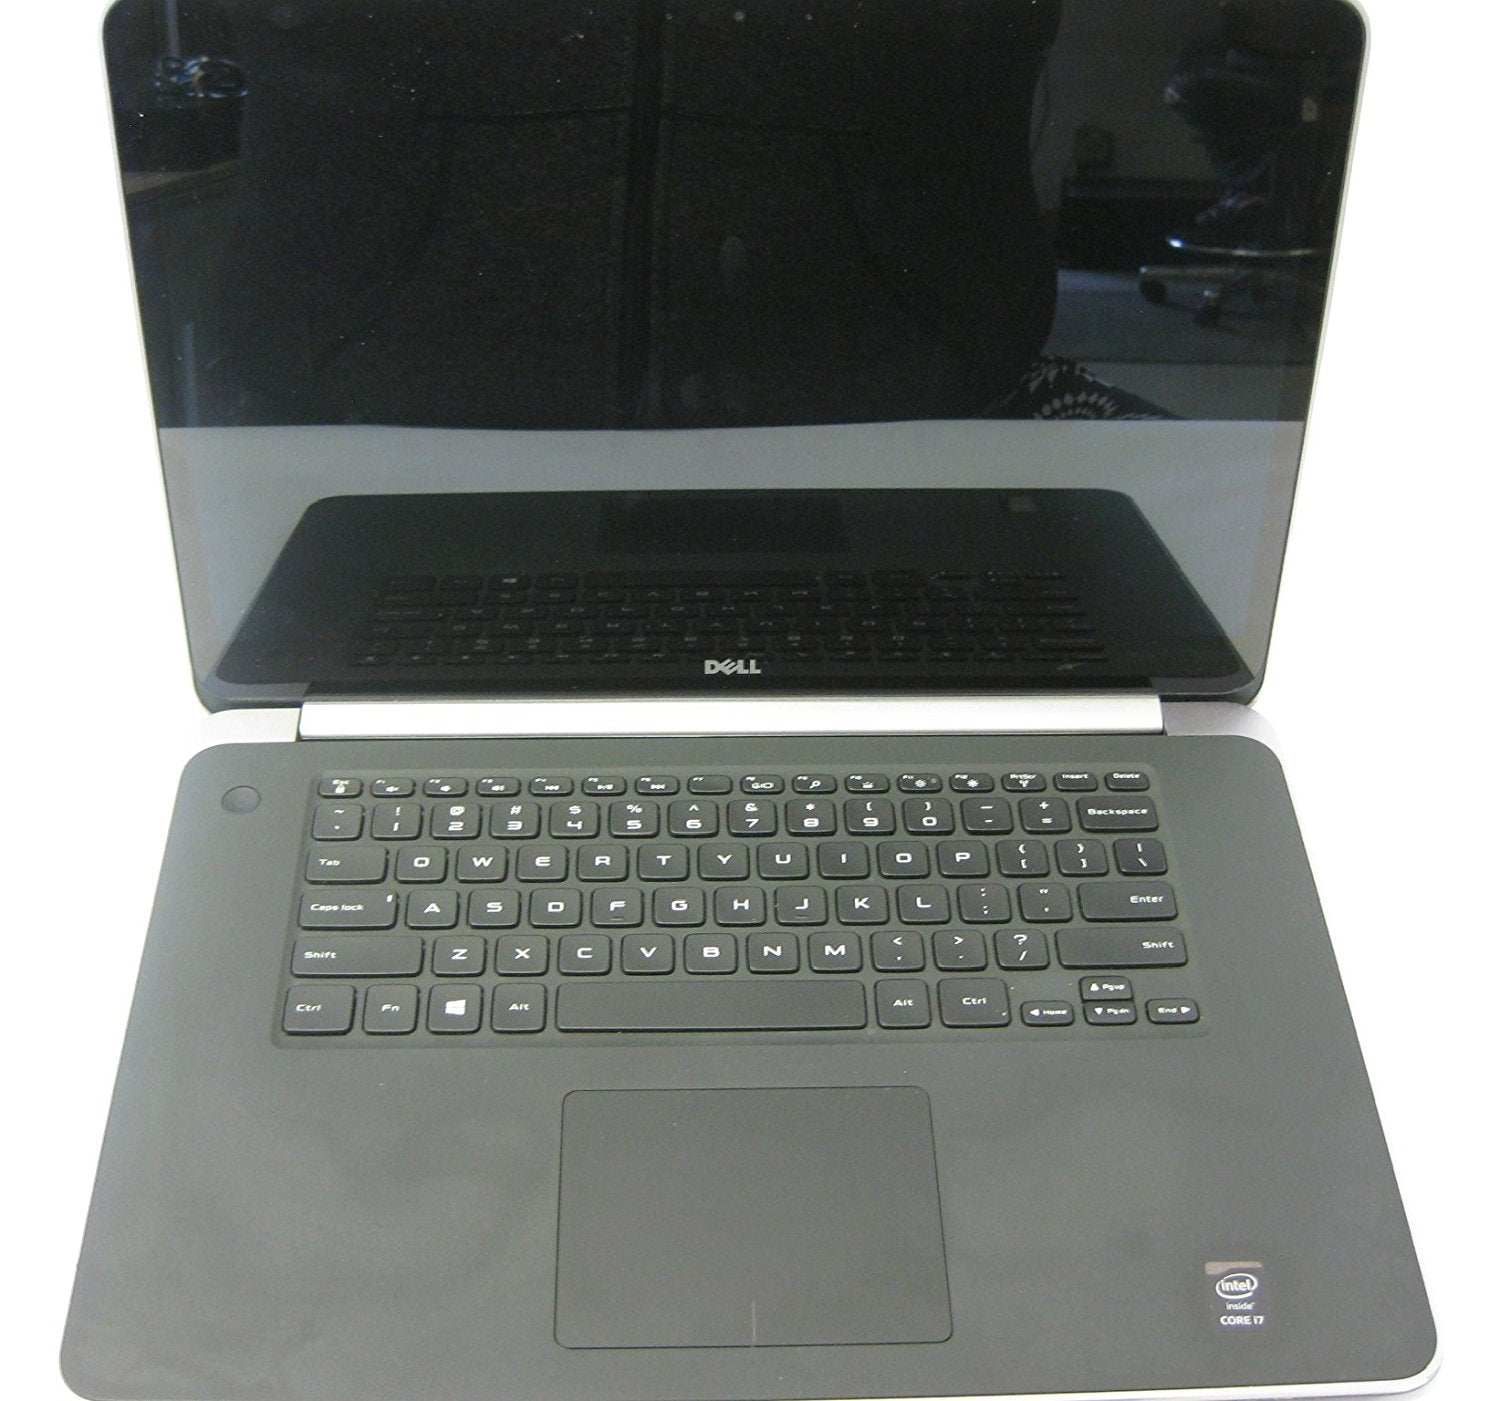 Buy Dell Precision M3800 Intel Core i7 4th Gen Quad Core